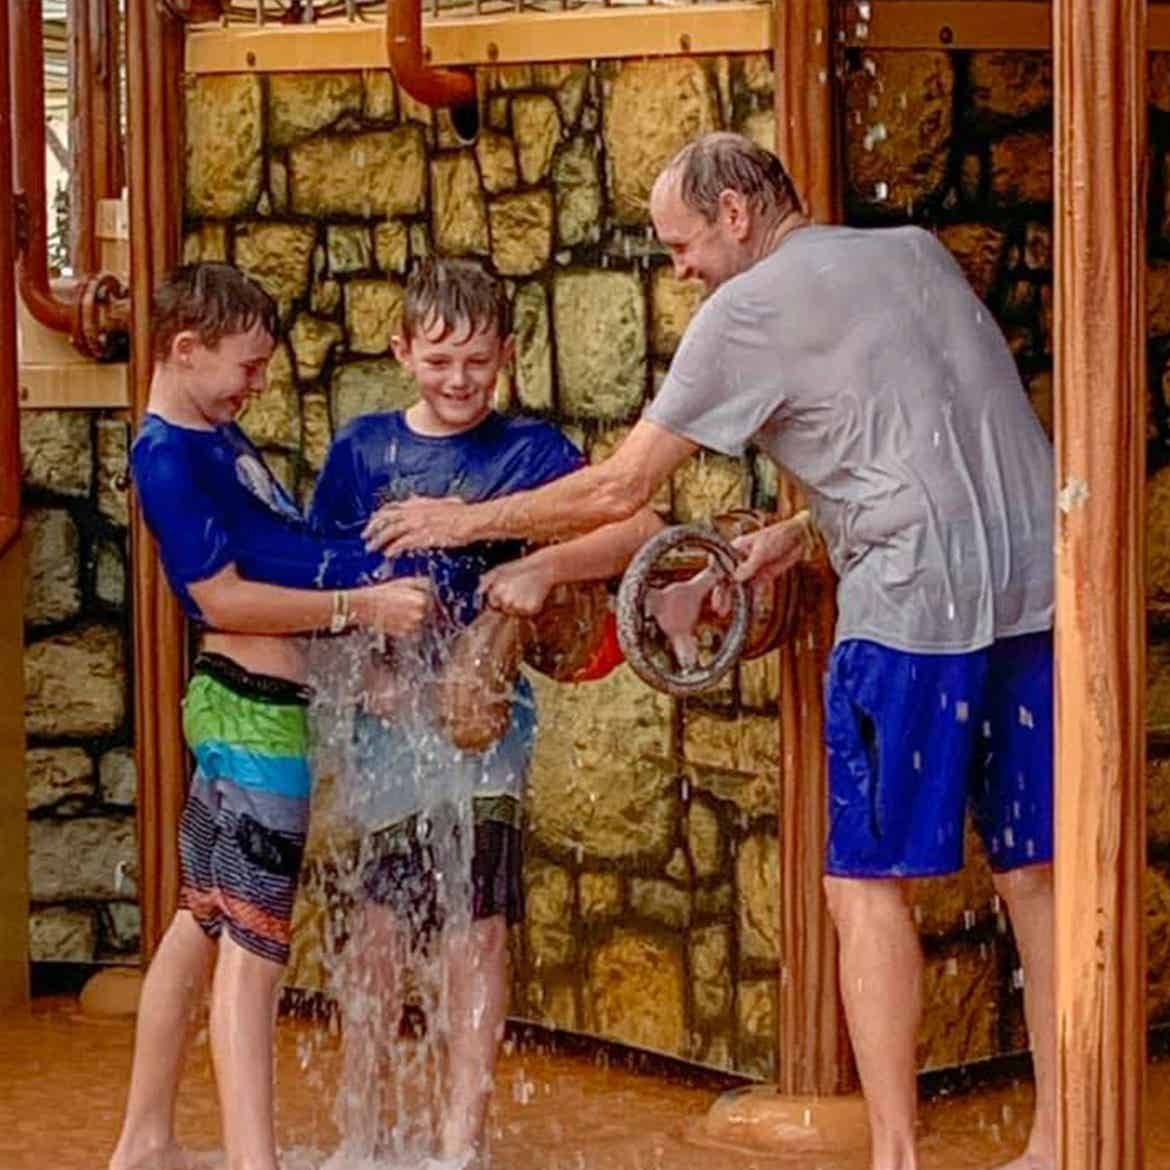 Author, Amanda Nall's father (right) and sons (left) play in the water park splash station.